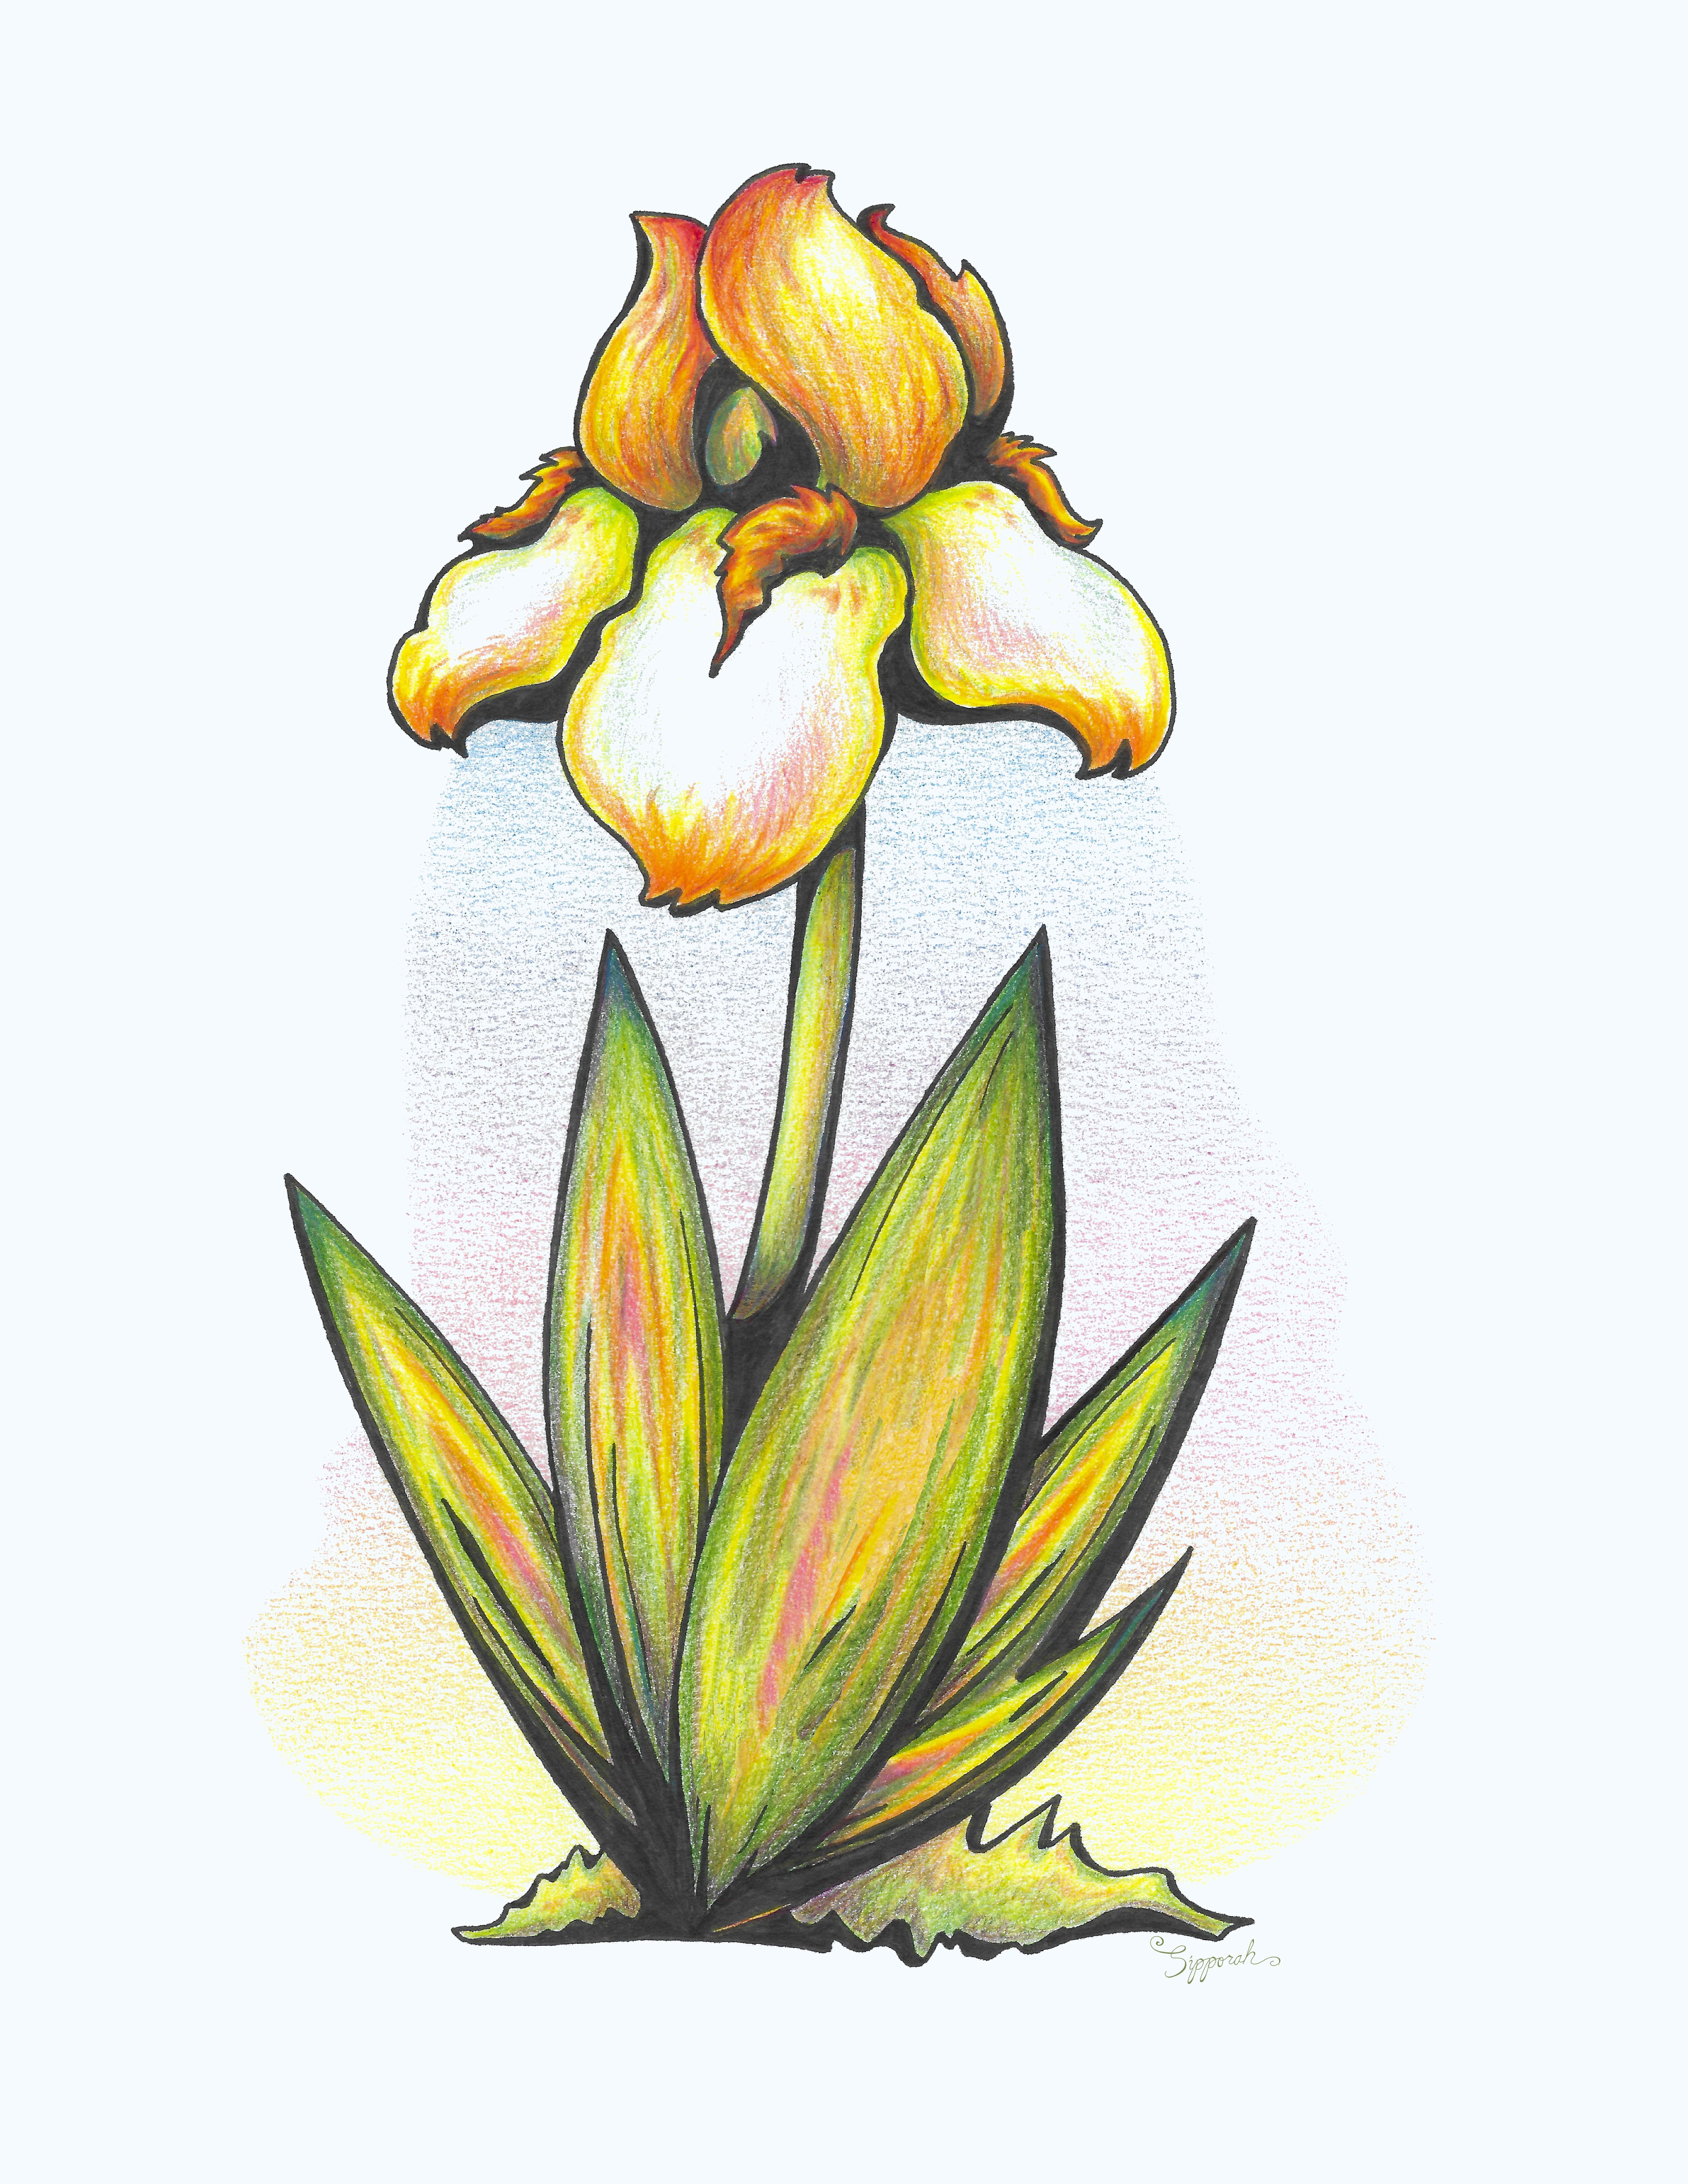 Vibrant Flower 7 Iris By Sipporah Art And Illustration In 2020 Iris Drawing Illustration Art Vibrant Flower